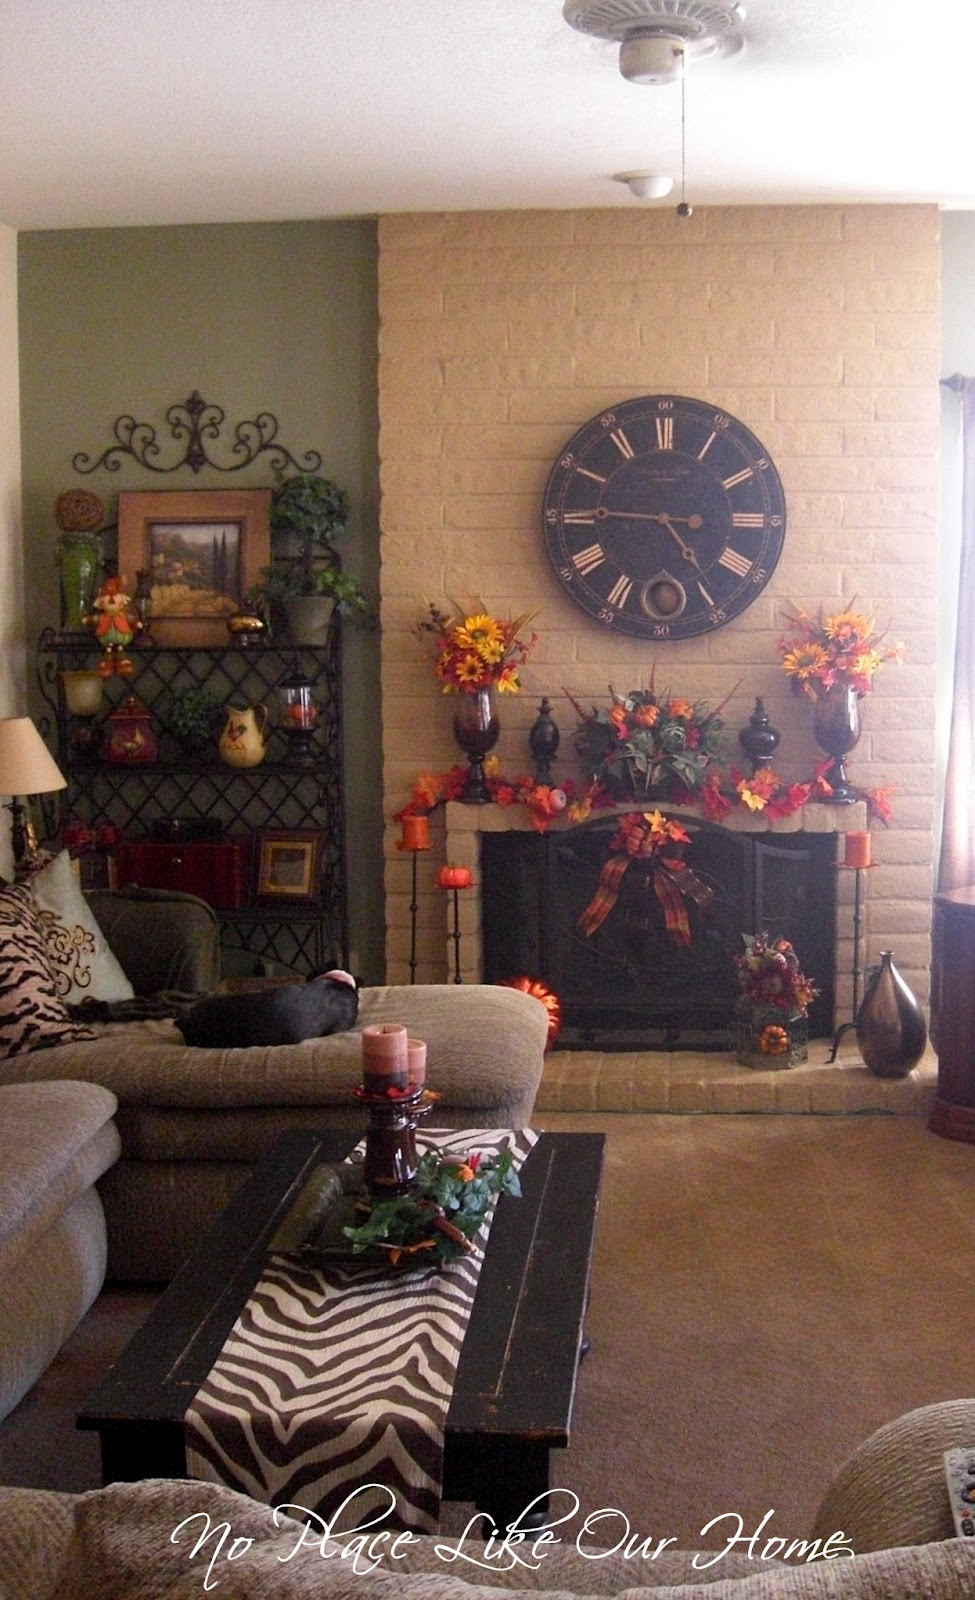 Decor For Living Rooms Using Birds: No Place Like Our Home: Fall Decor